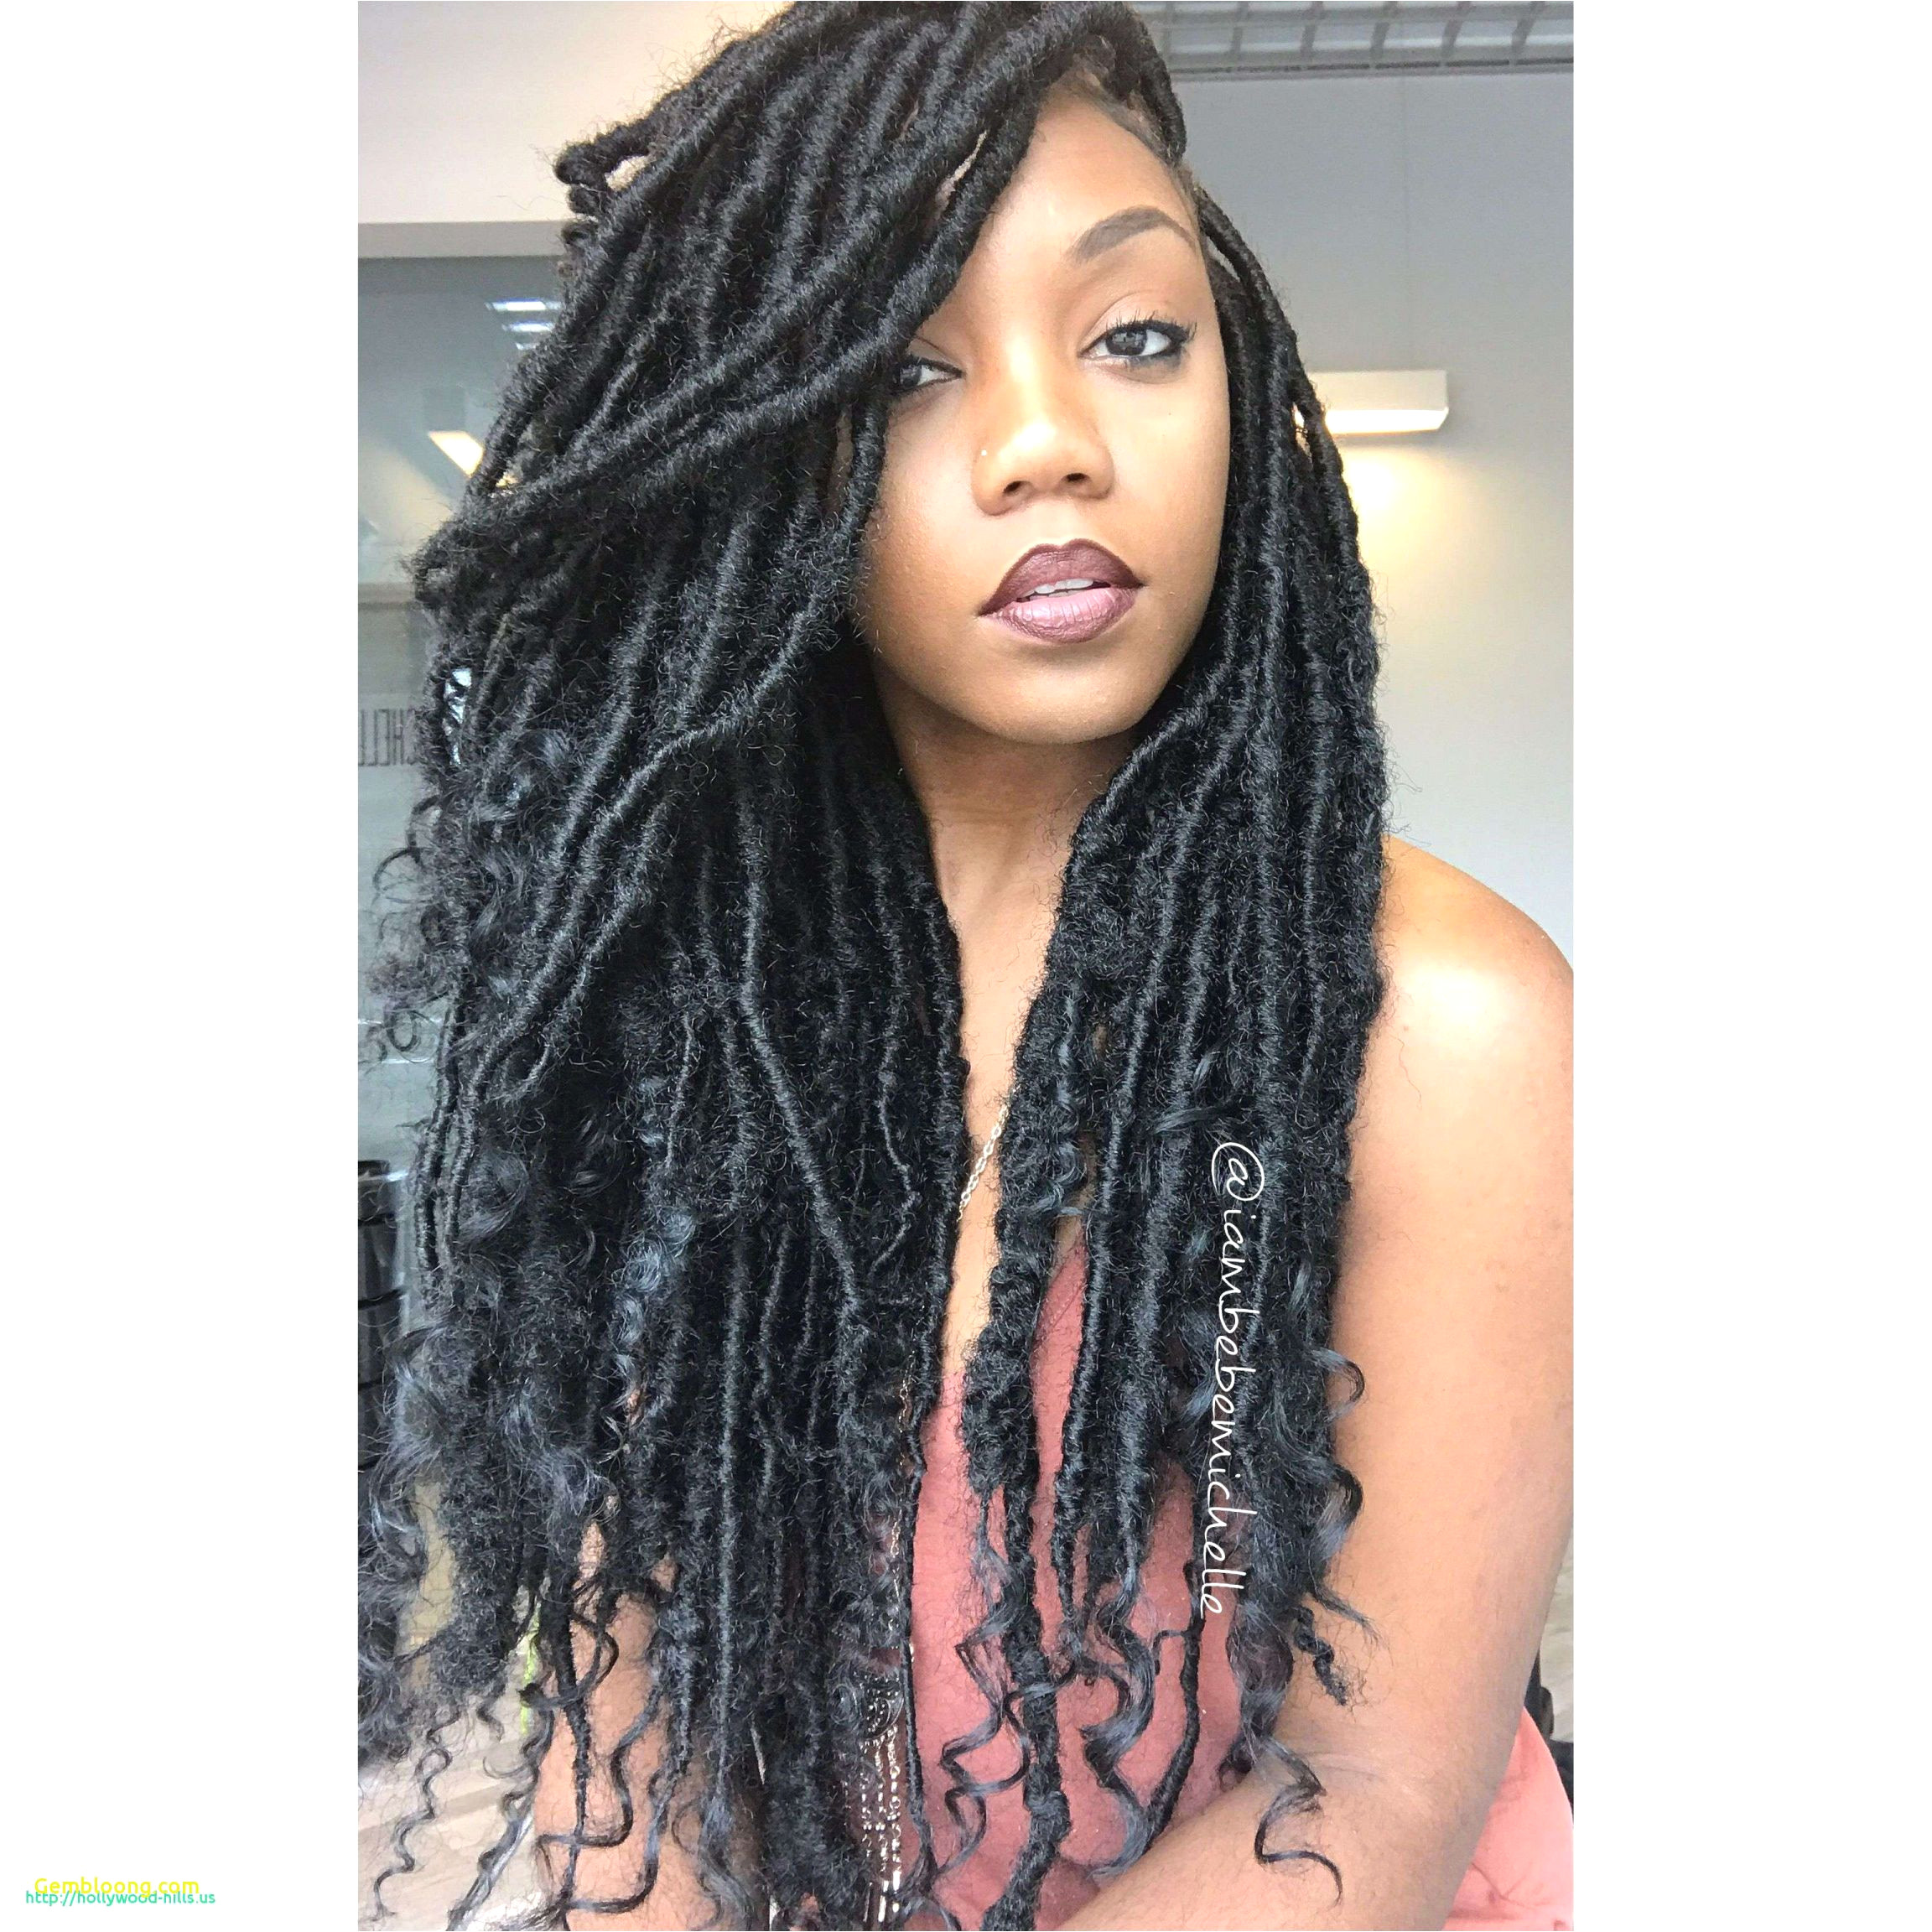 Hairstyles for Medium Dreadlocks Lovely First Class Dreads Hairstyle to Make You Look Pretty ¢Å¡¡